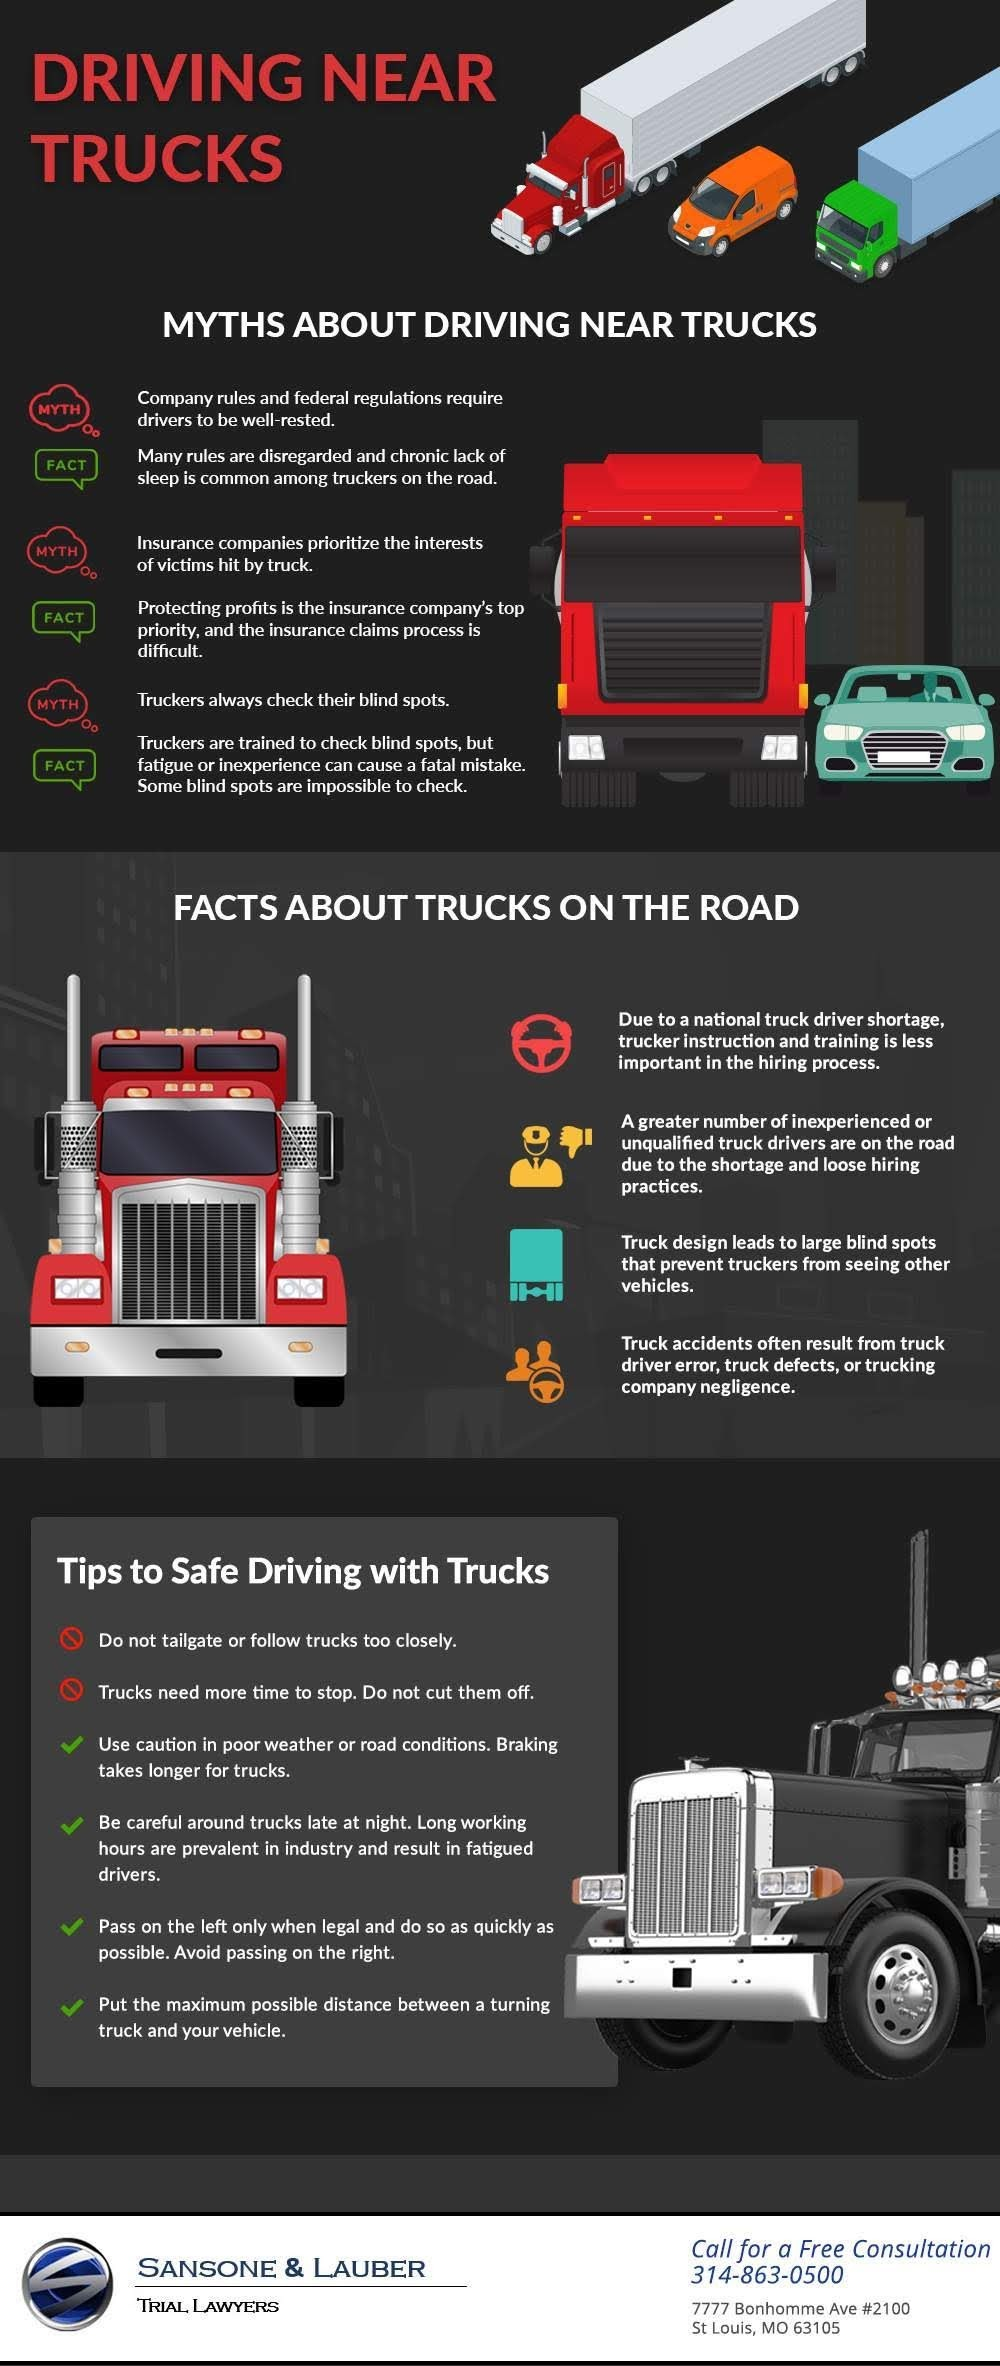 Myths About Driving Near Trucks #infographic